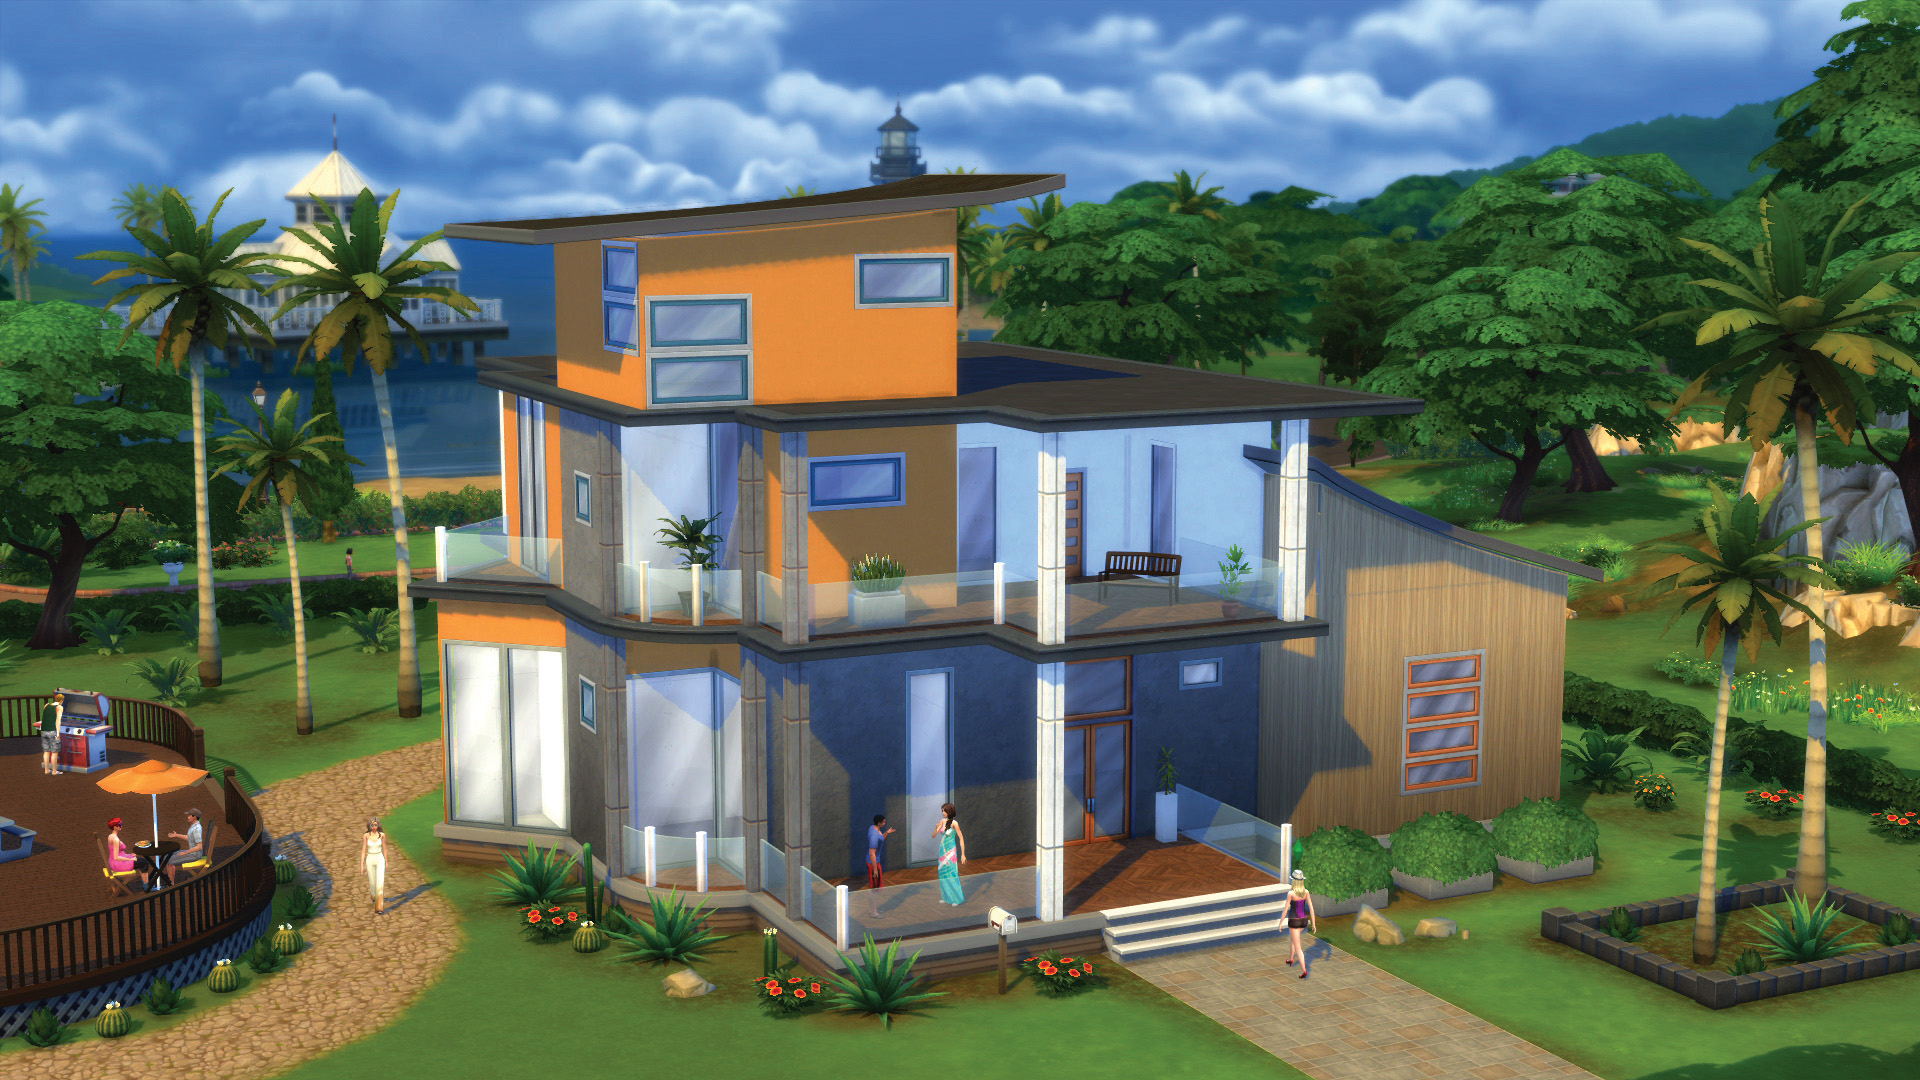 Stuff, not stories, forms the real heart of The Sims series | PC Gamer